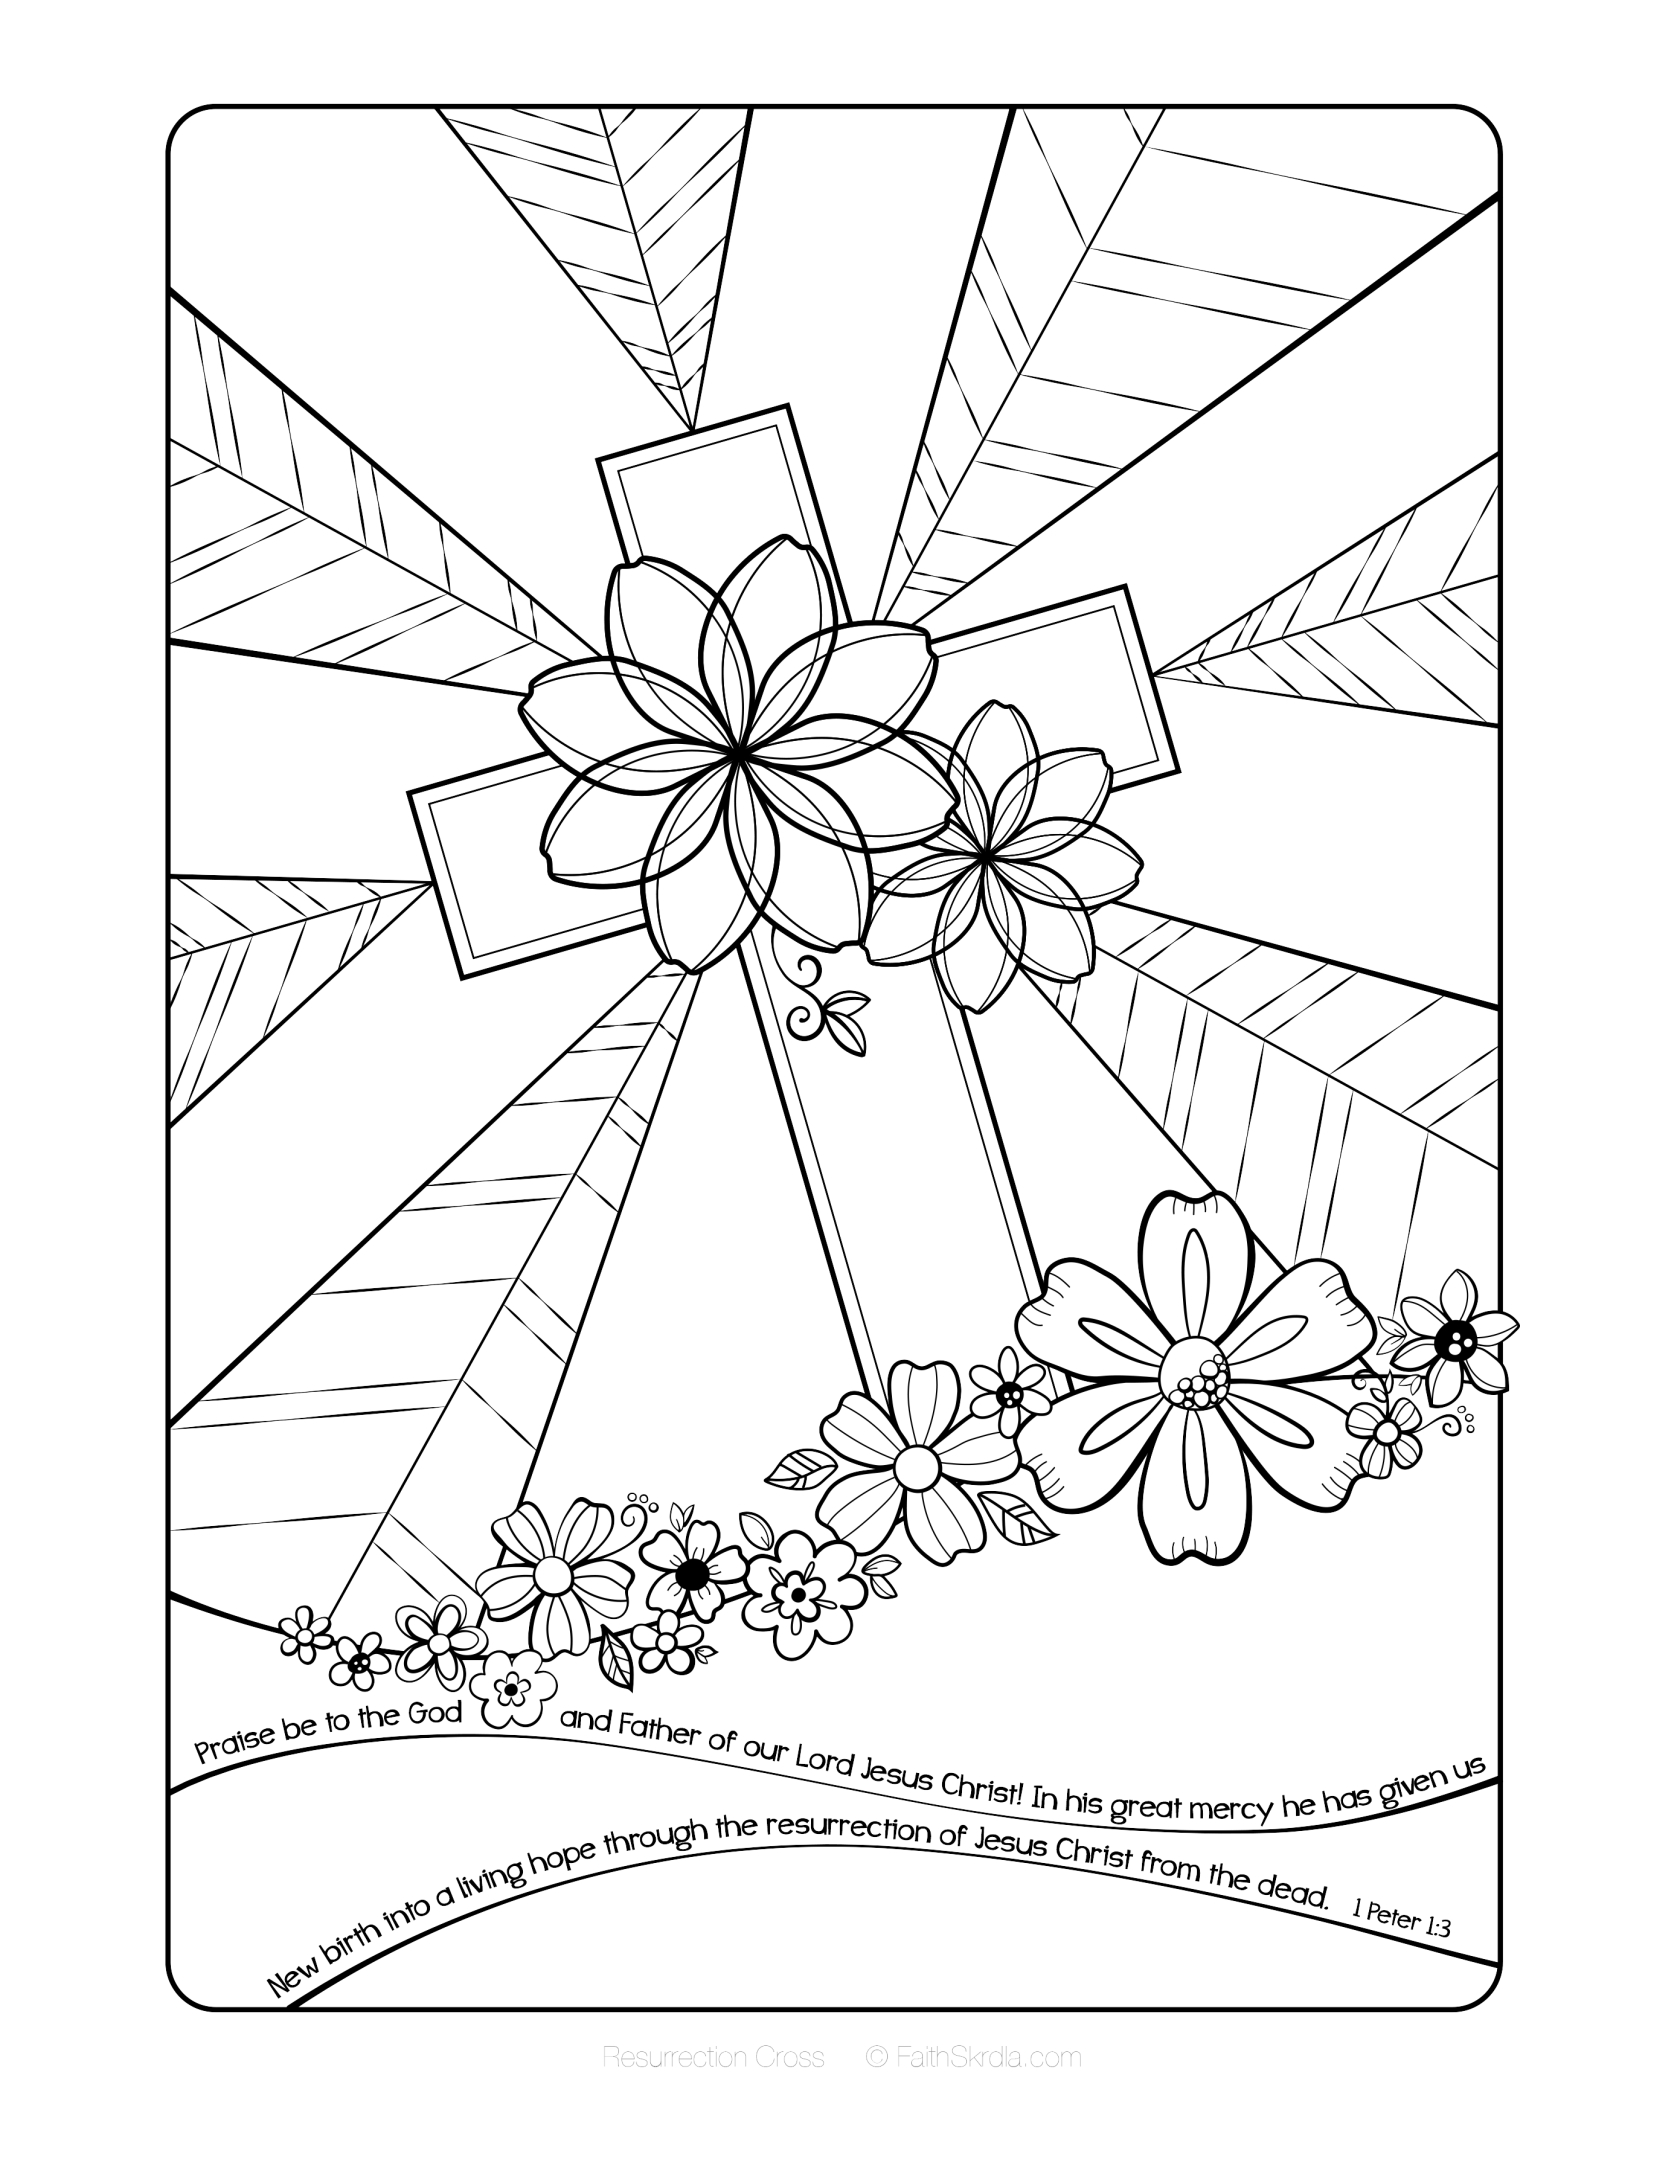 coloring pages for bible lessons Download-Free Easter Adult Coloring Page by Faith Skrdla Resurrection Cross 1 Peter 1 3 Bible Verse Christian coloring page for adults and grown up kids 16-m